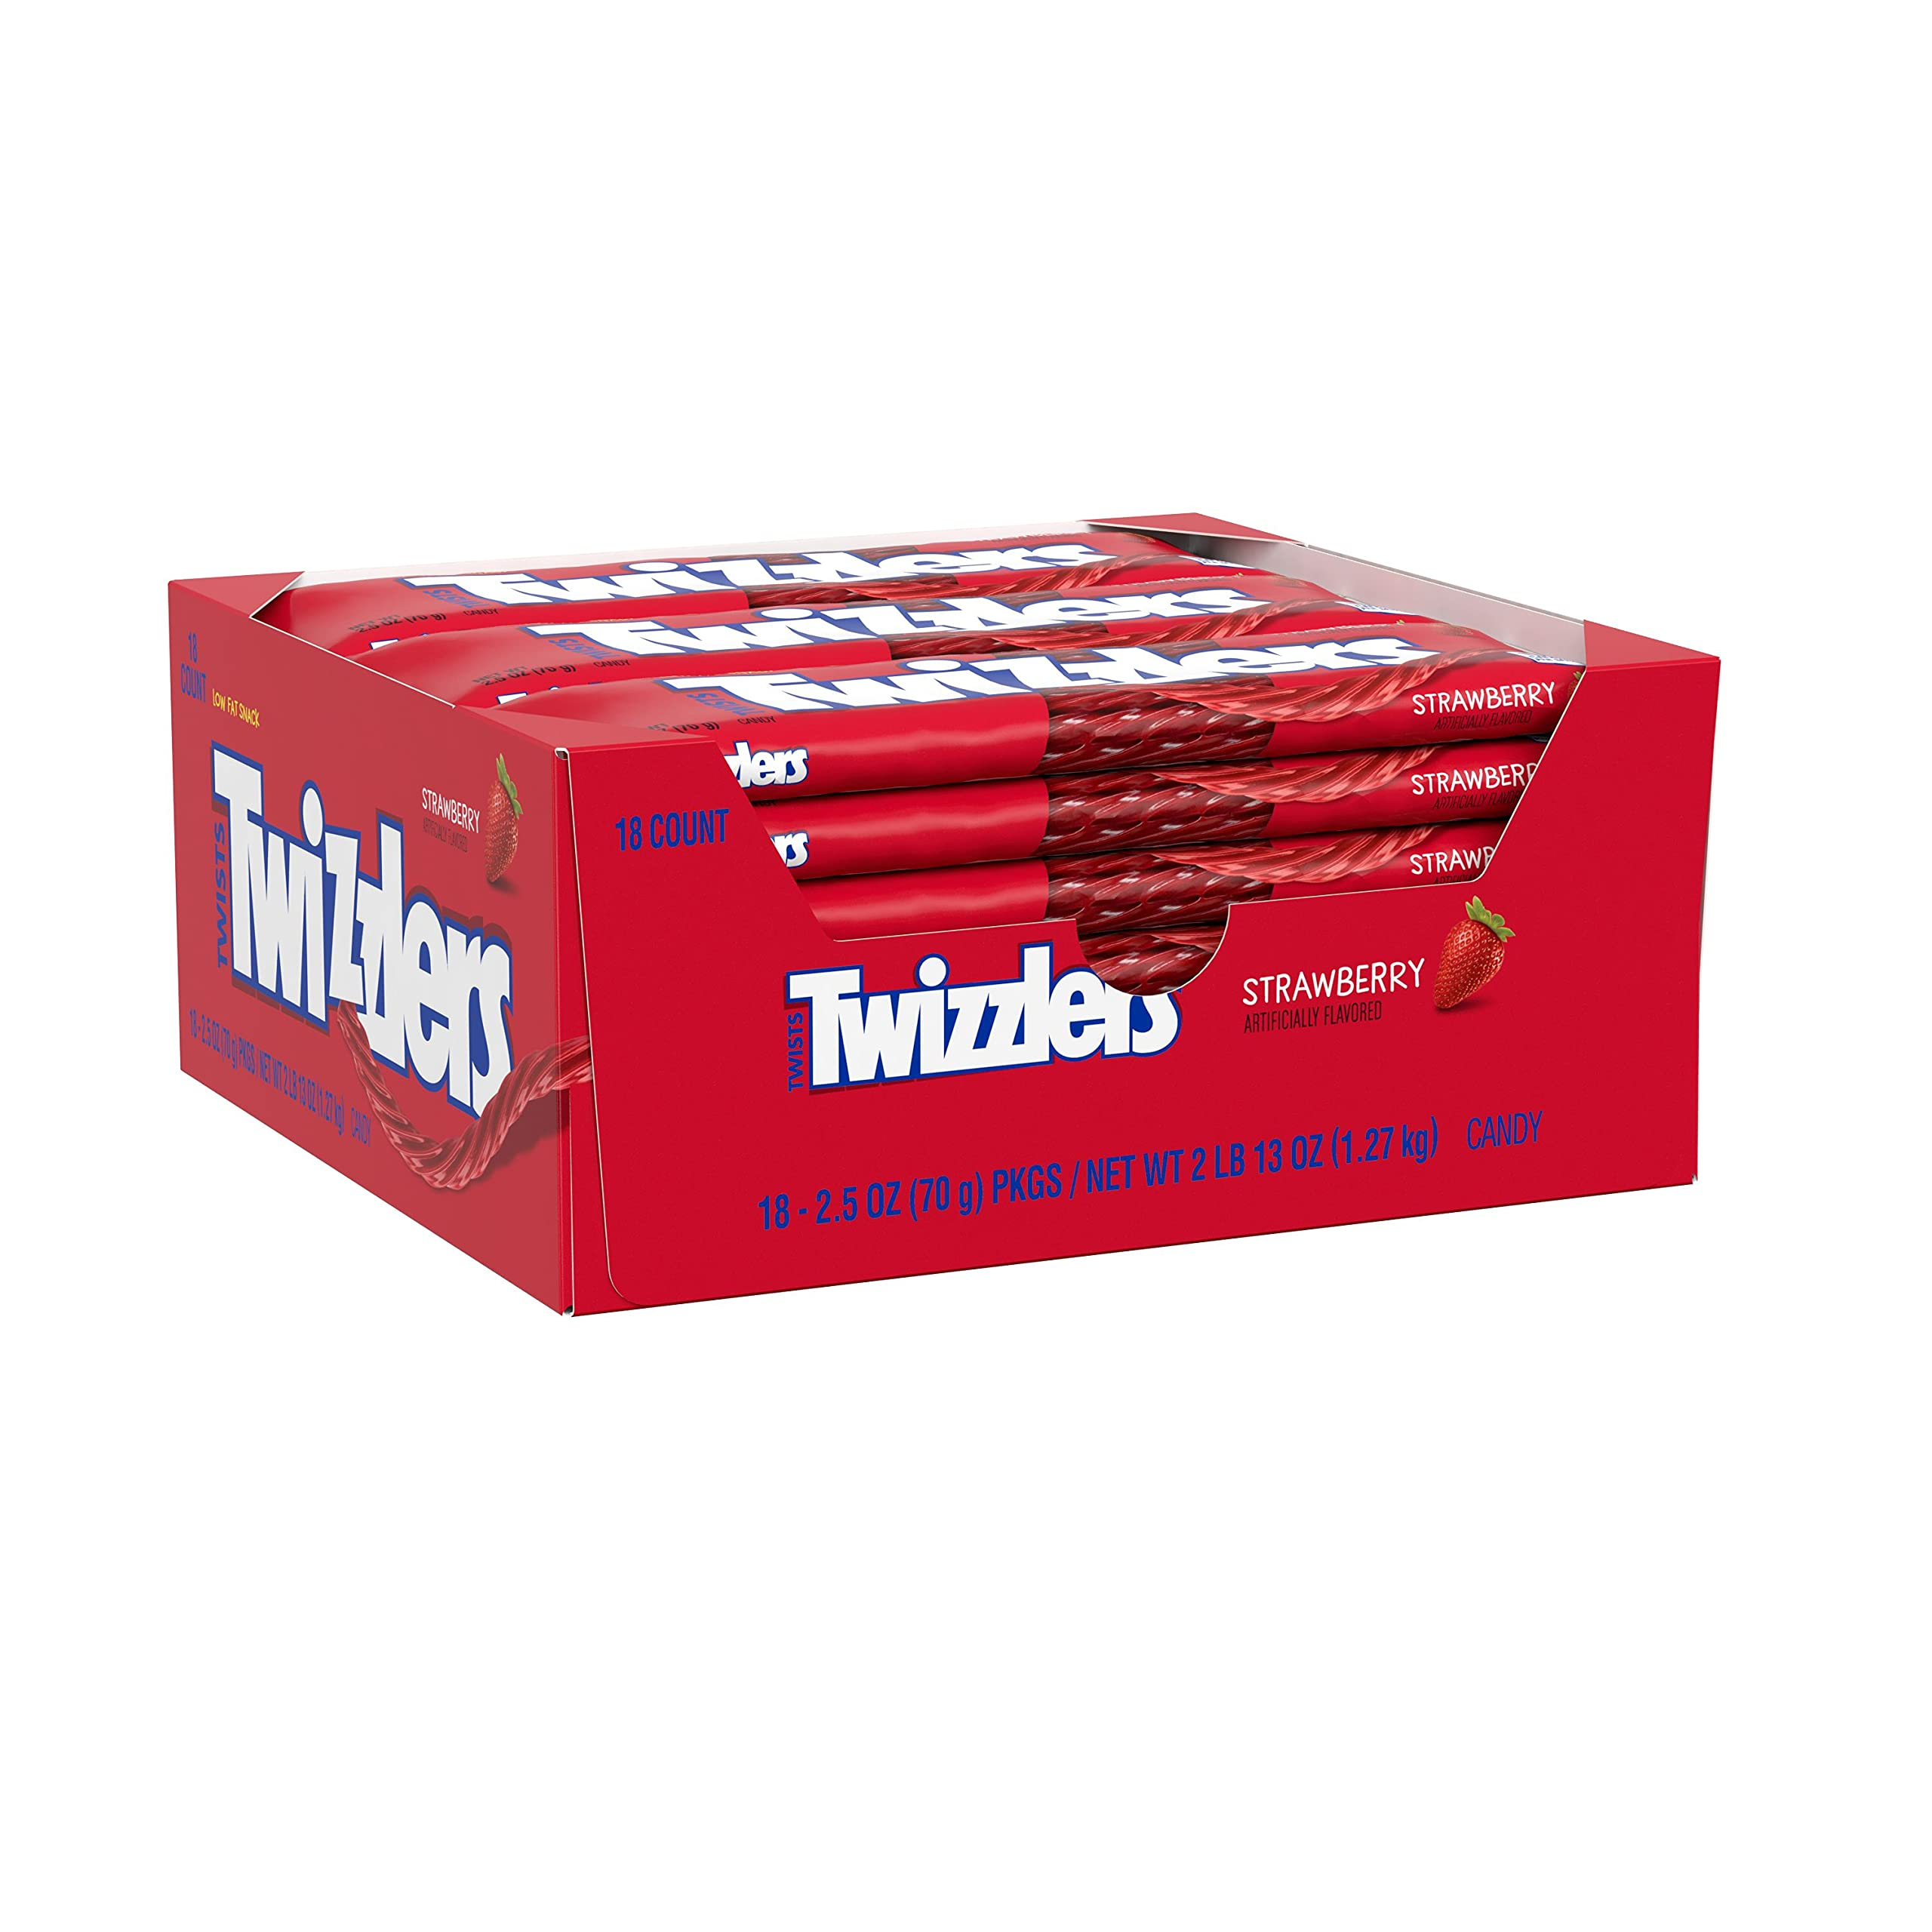 TWIZZLERS Twists Strawberry Flavored Chewy Candy, Bulk, 2.5 oz Bags (18 Count)